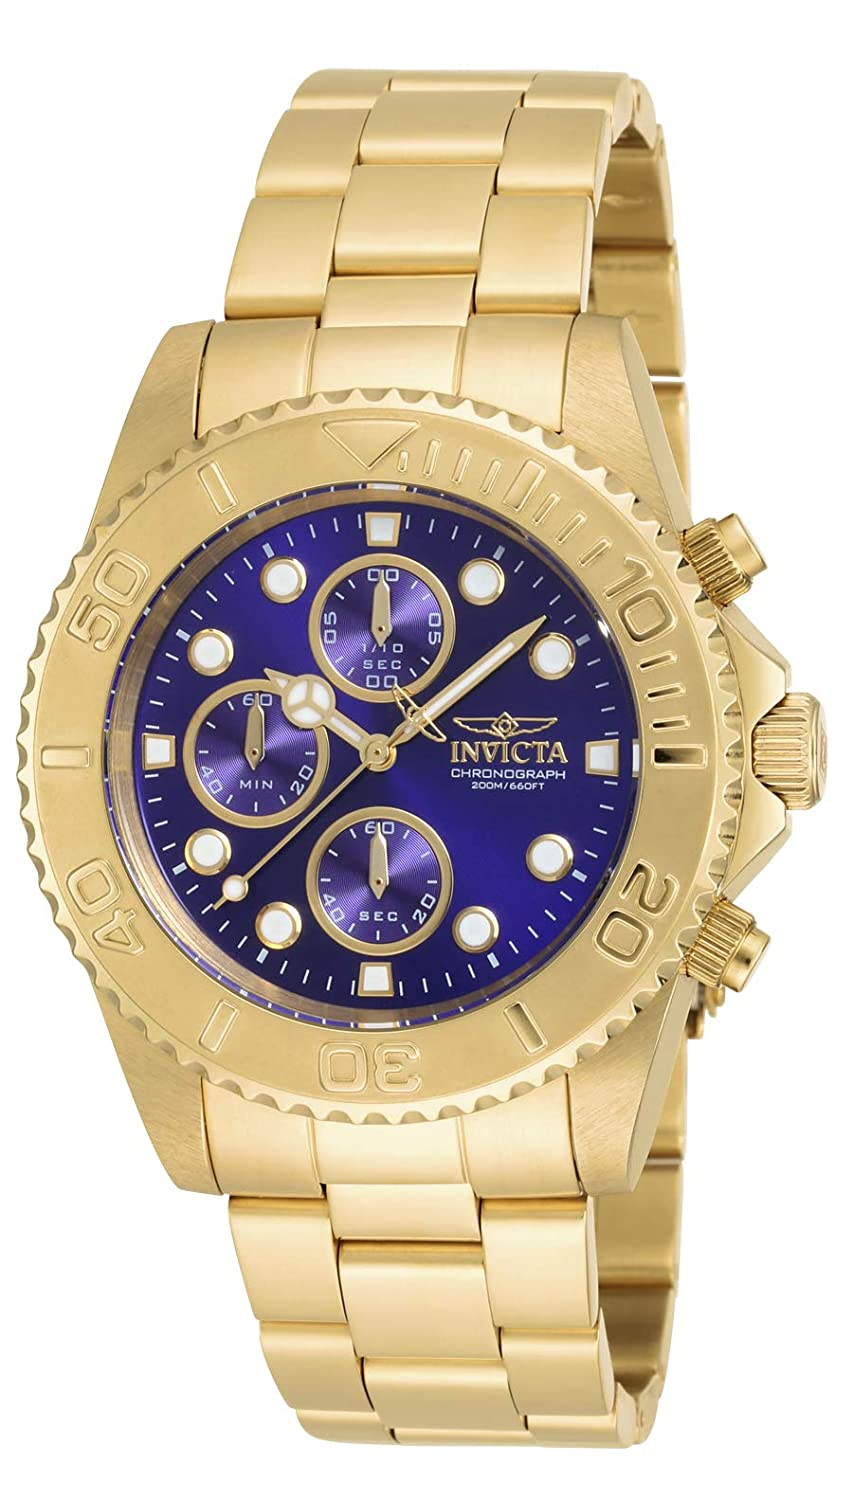 Amazon.com: Invicta Men's 19157 Pro Diver Gold-Tone Bracelet Watch: Invicta:  Watches